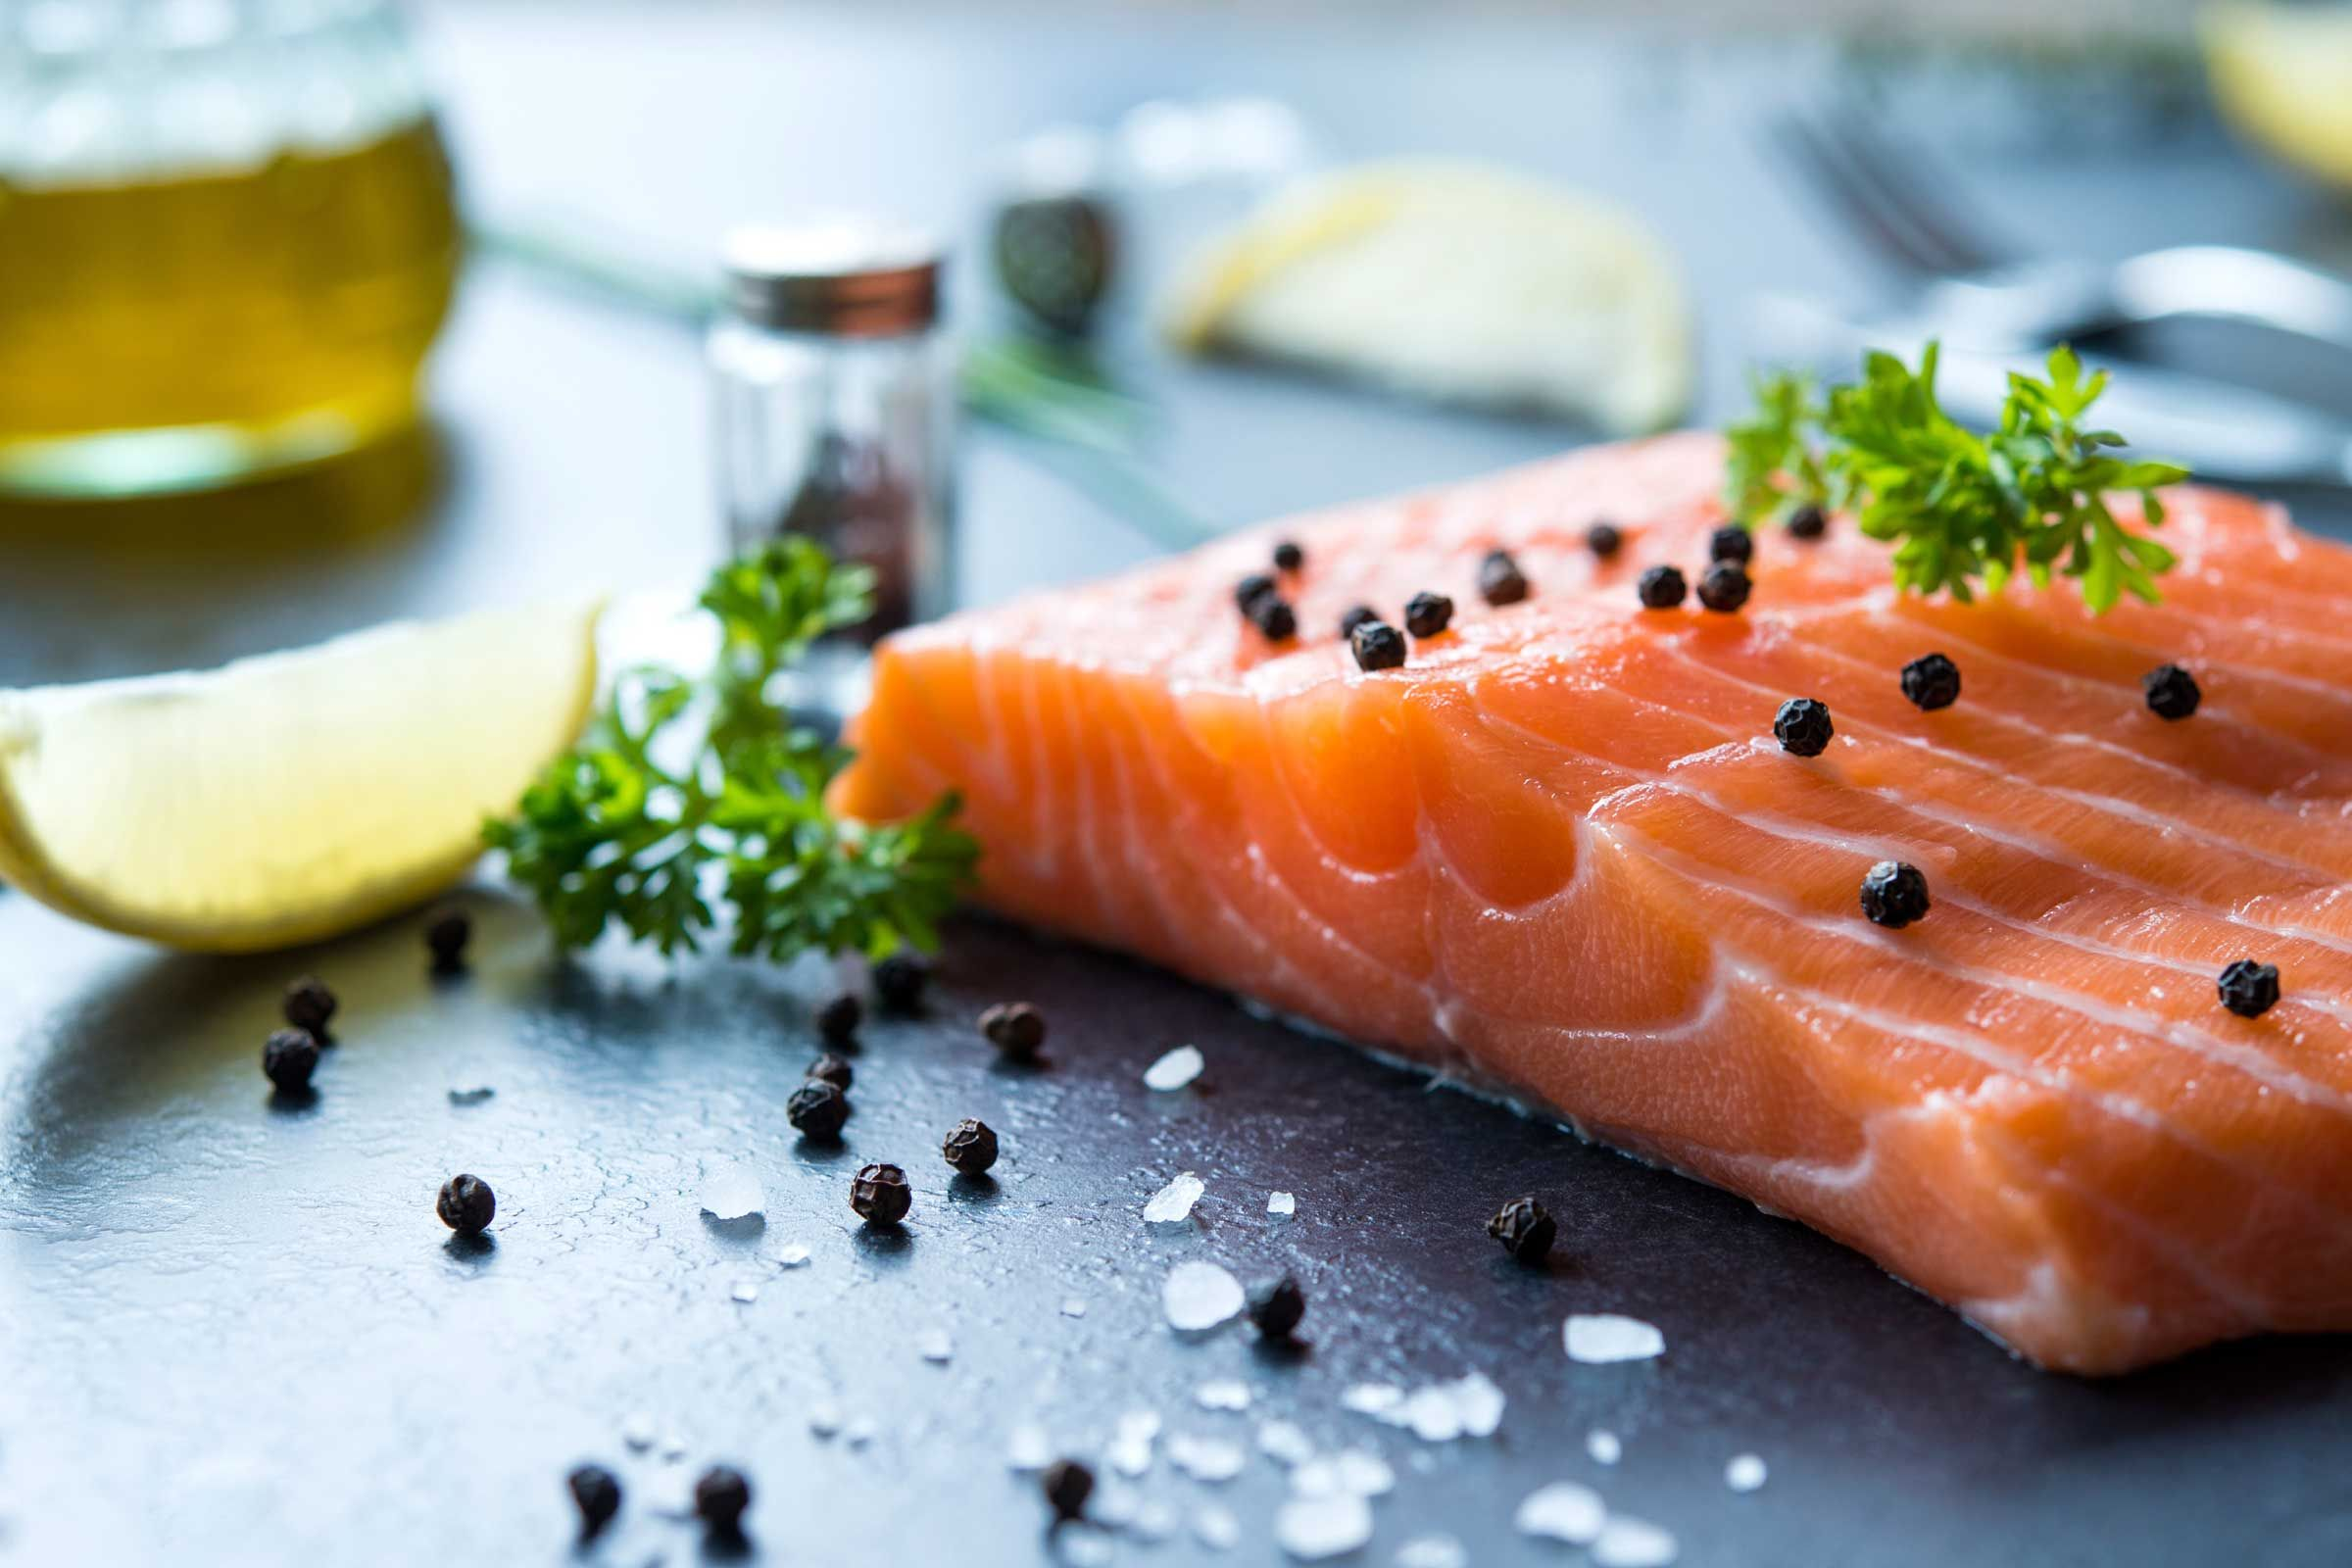 how to remove skin from salmon easily